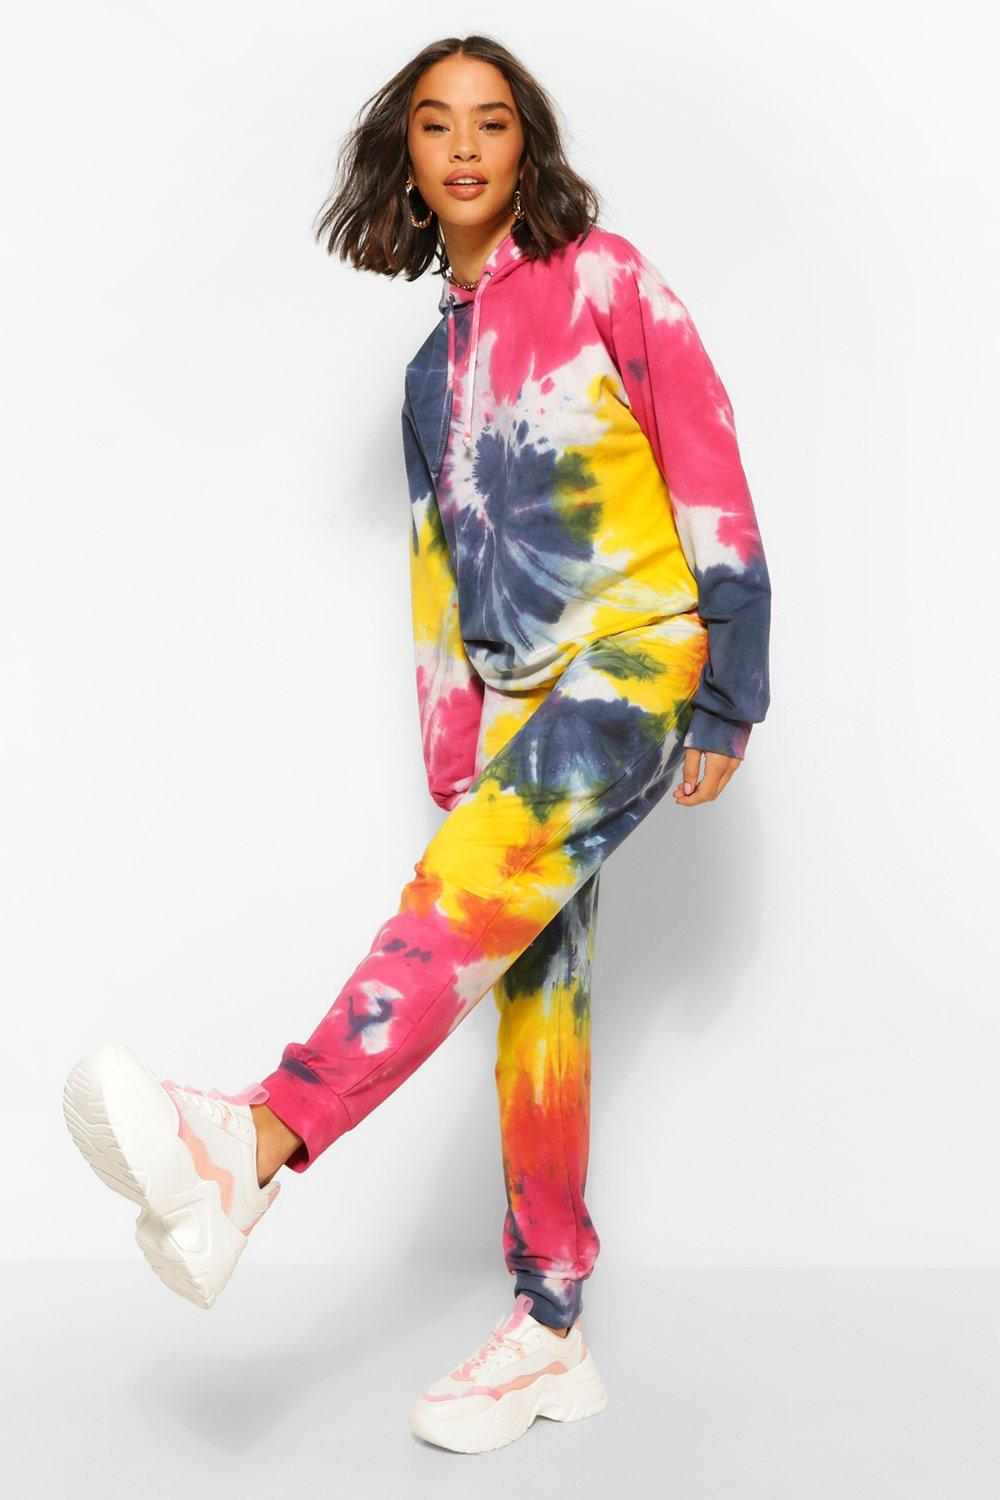 70s Workout Clothes   80s Tracksuits, Running Shorts, Leotards Womens Tie Dye Jogger - Red - 10 $16.80 AT vintagedancer.com